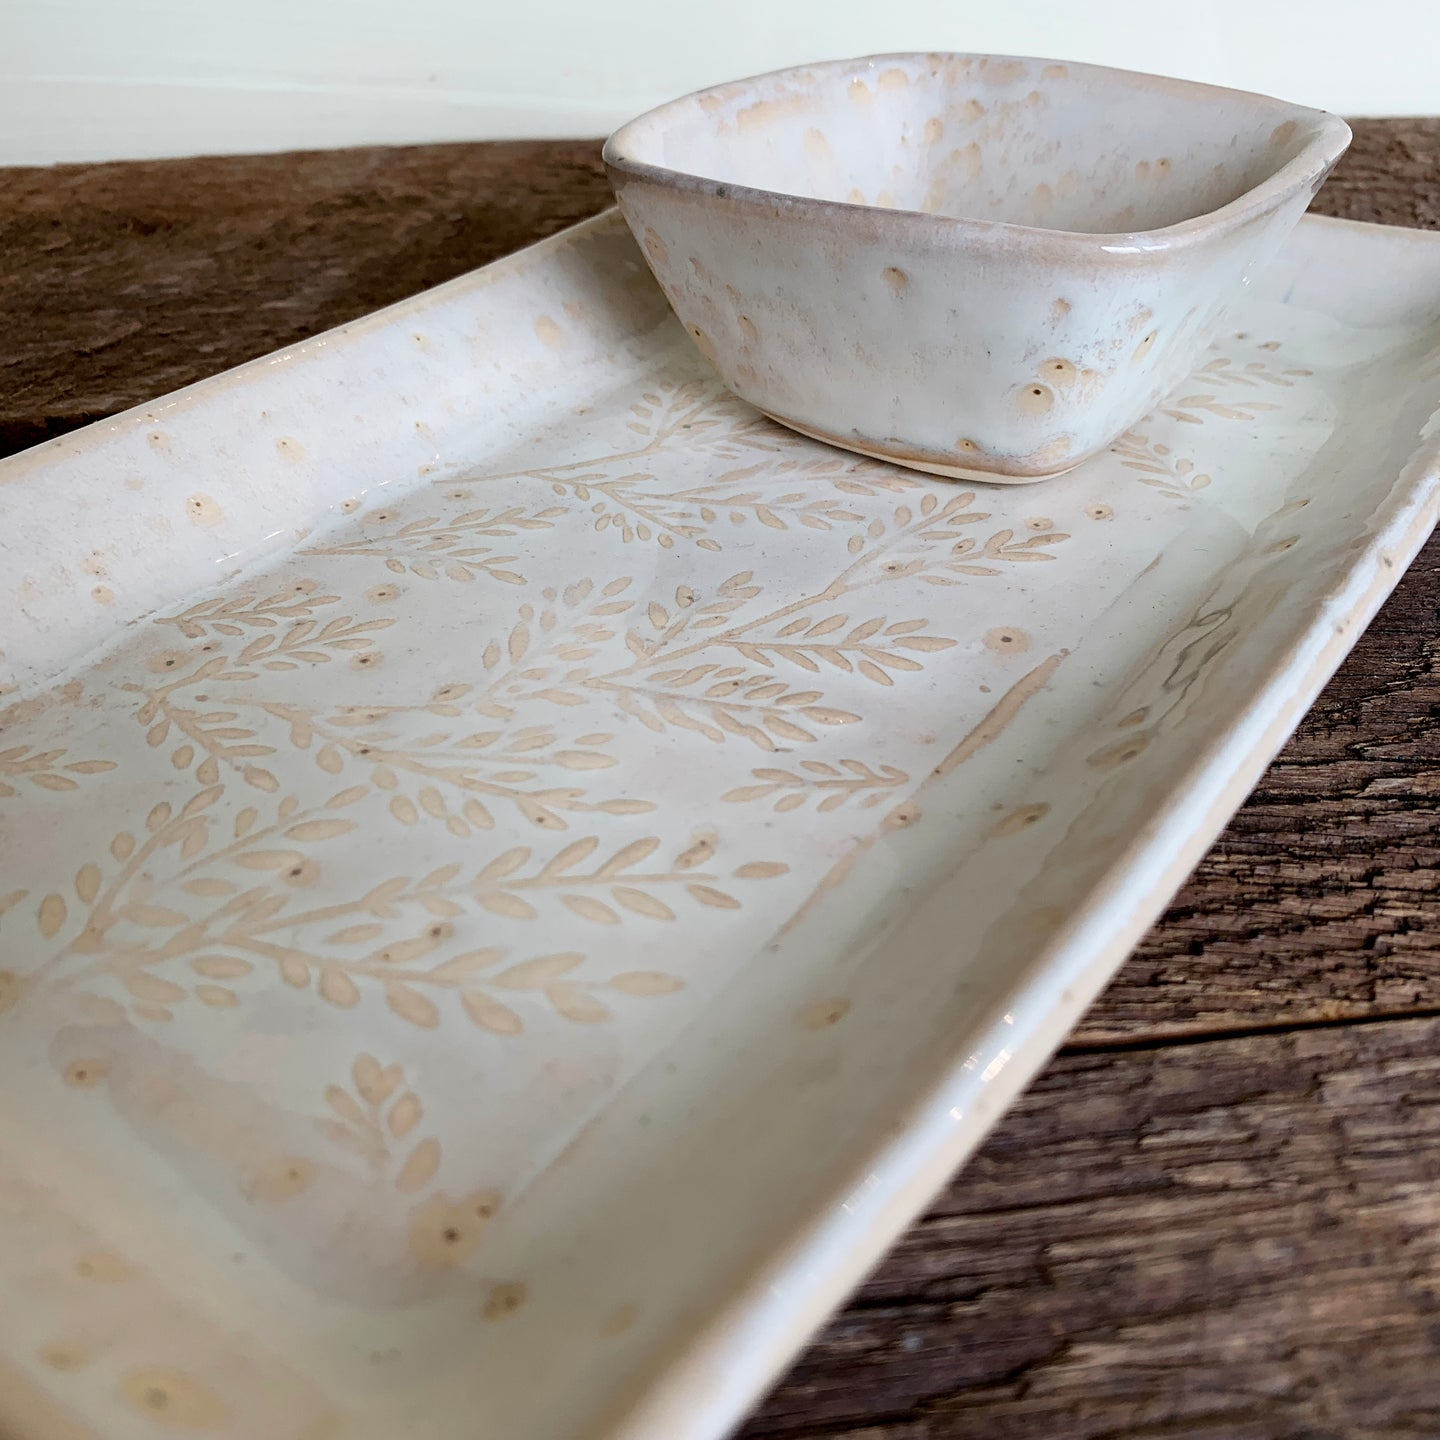 OATMEAL SMALL RECTANGLE PLATTER SET WITH FERNS (5.5